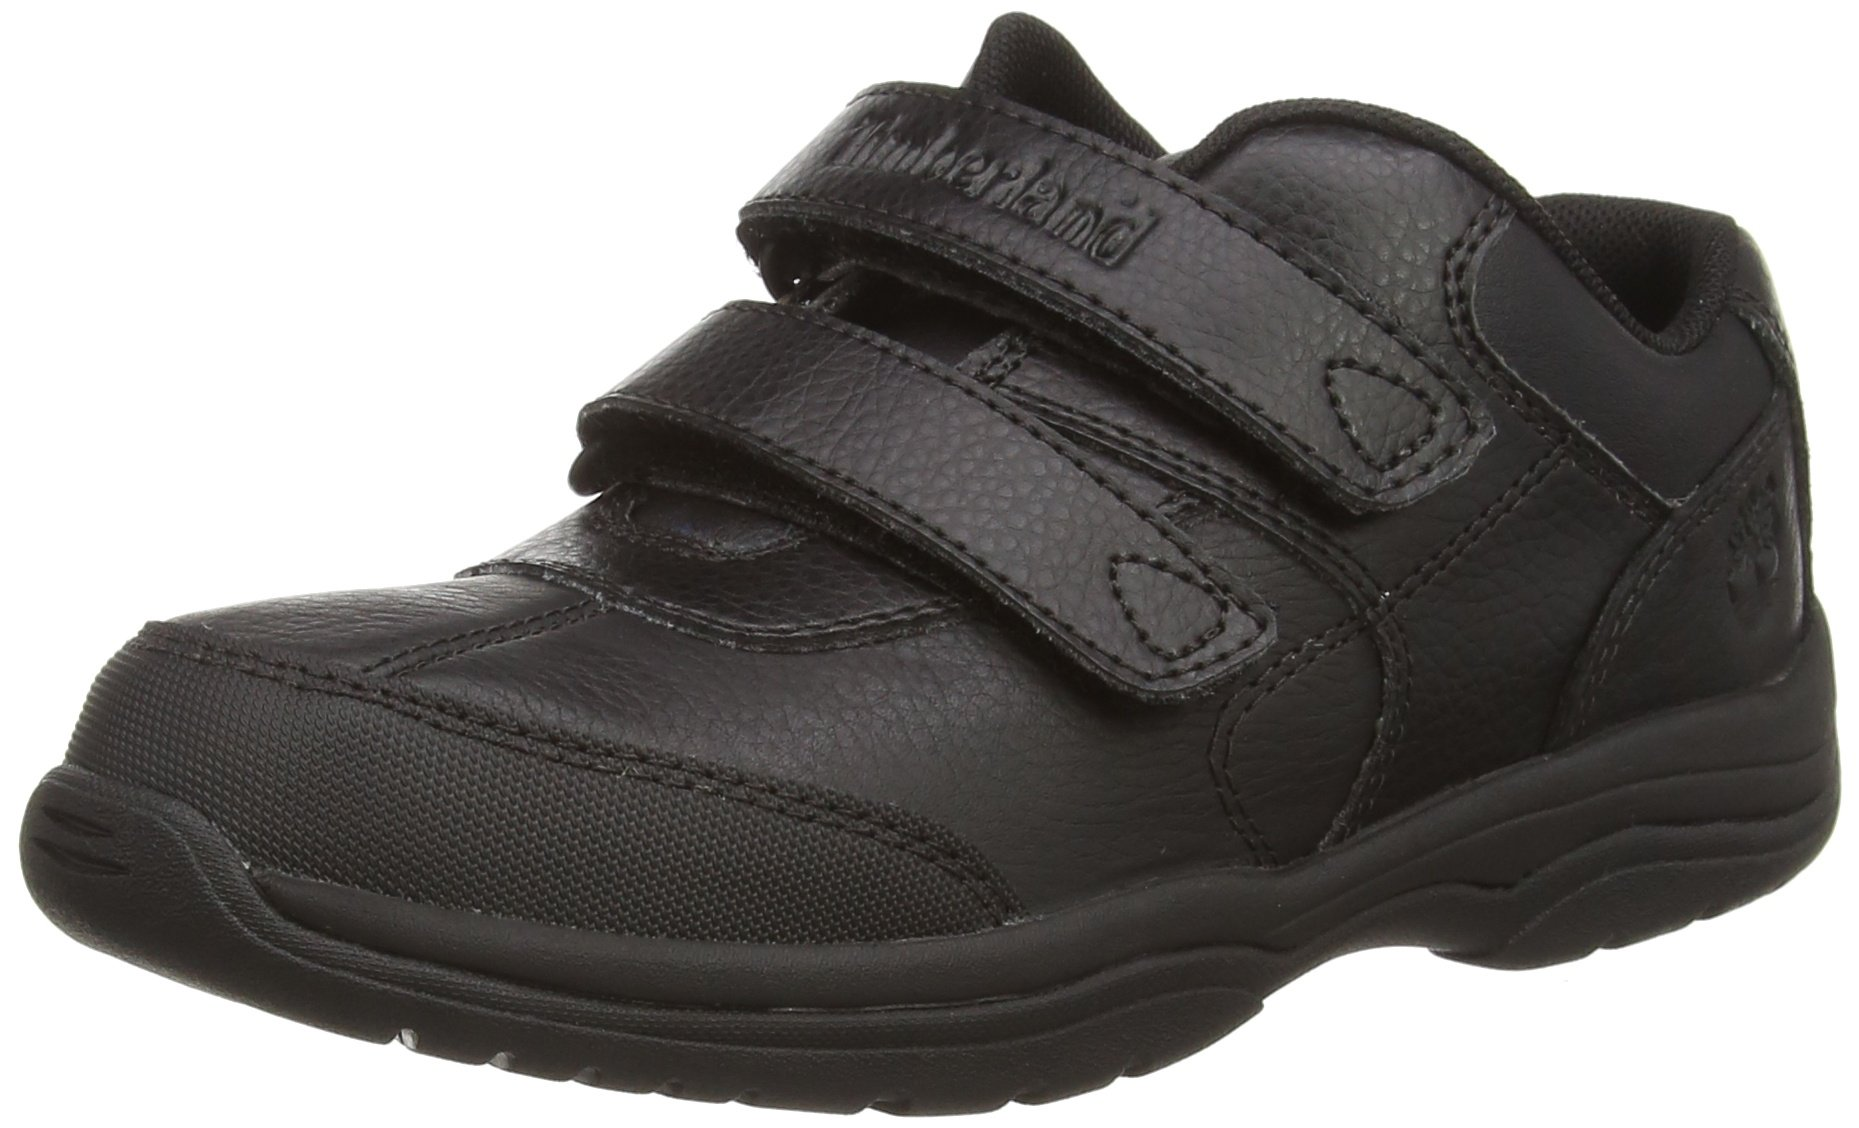 Timberland Woodman Park Hook-and-Loop Oxford (Toddler/Little Kid/Big Kid), Black, 7 M US Big Kid